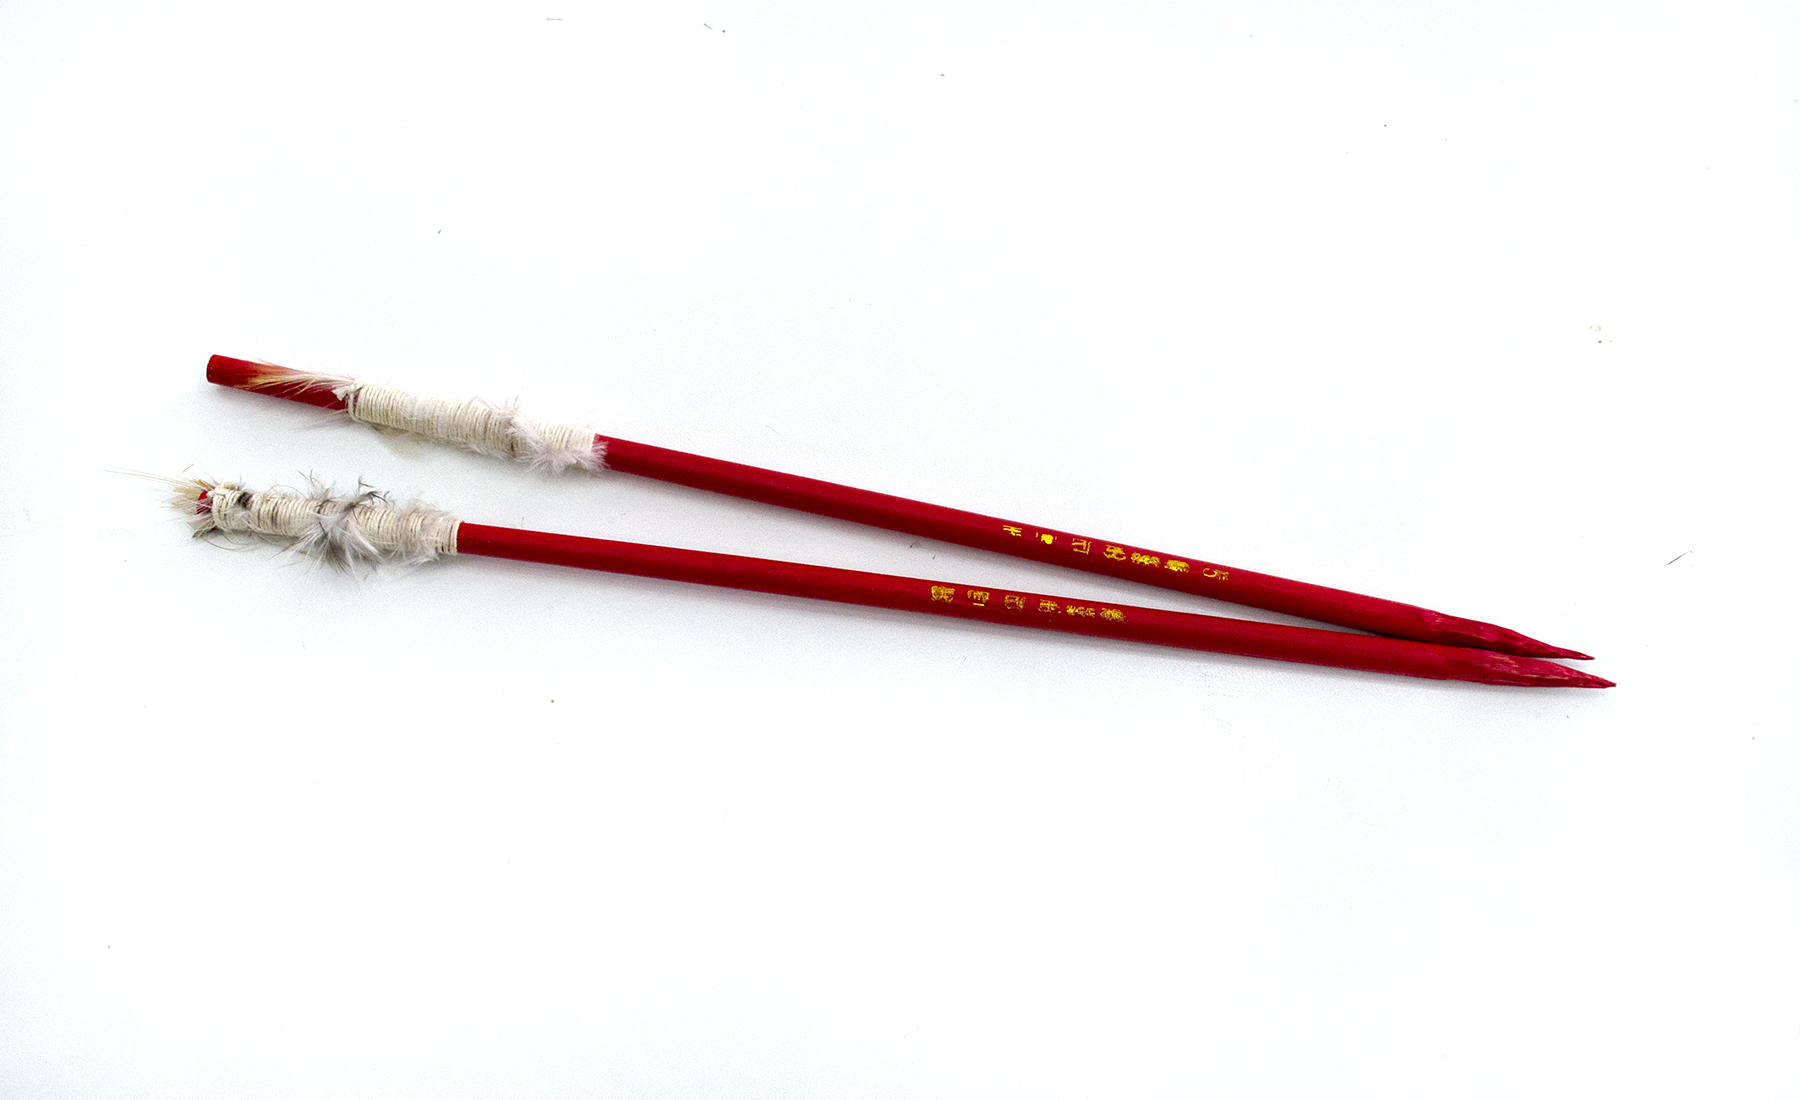 "Darts (8), 2018, Carlos Colín, Chopsticks, thread, feathers, 9.5"" (L), $200"